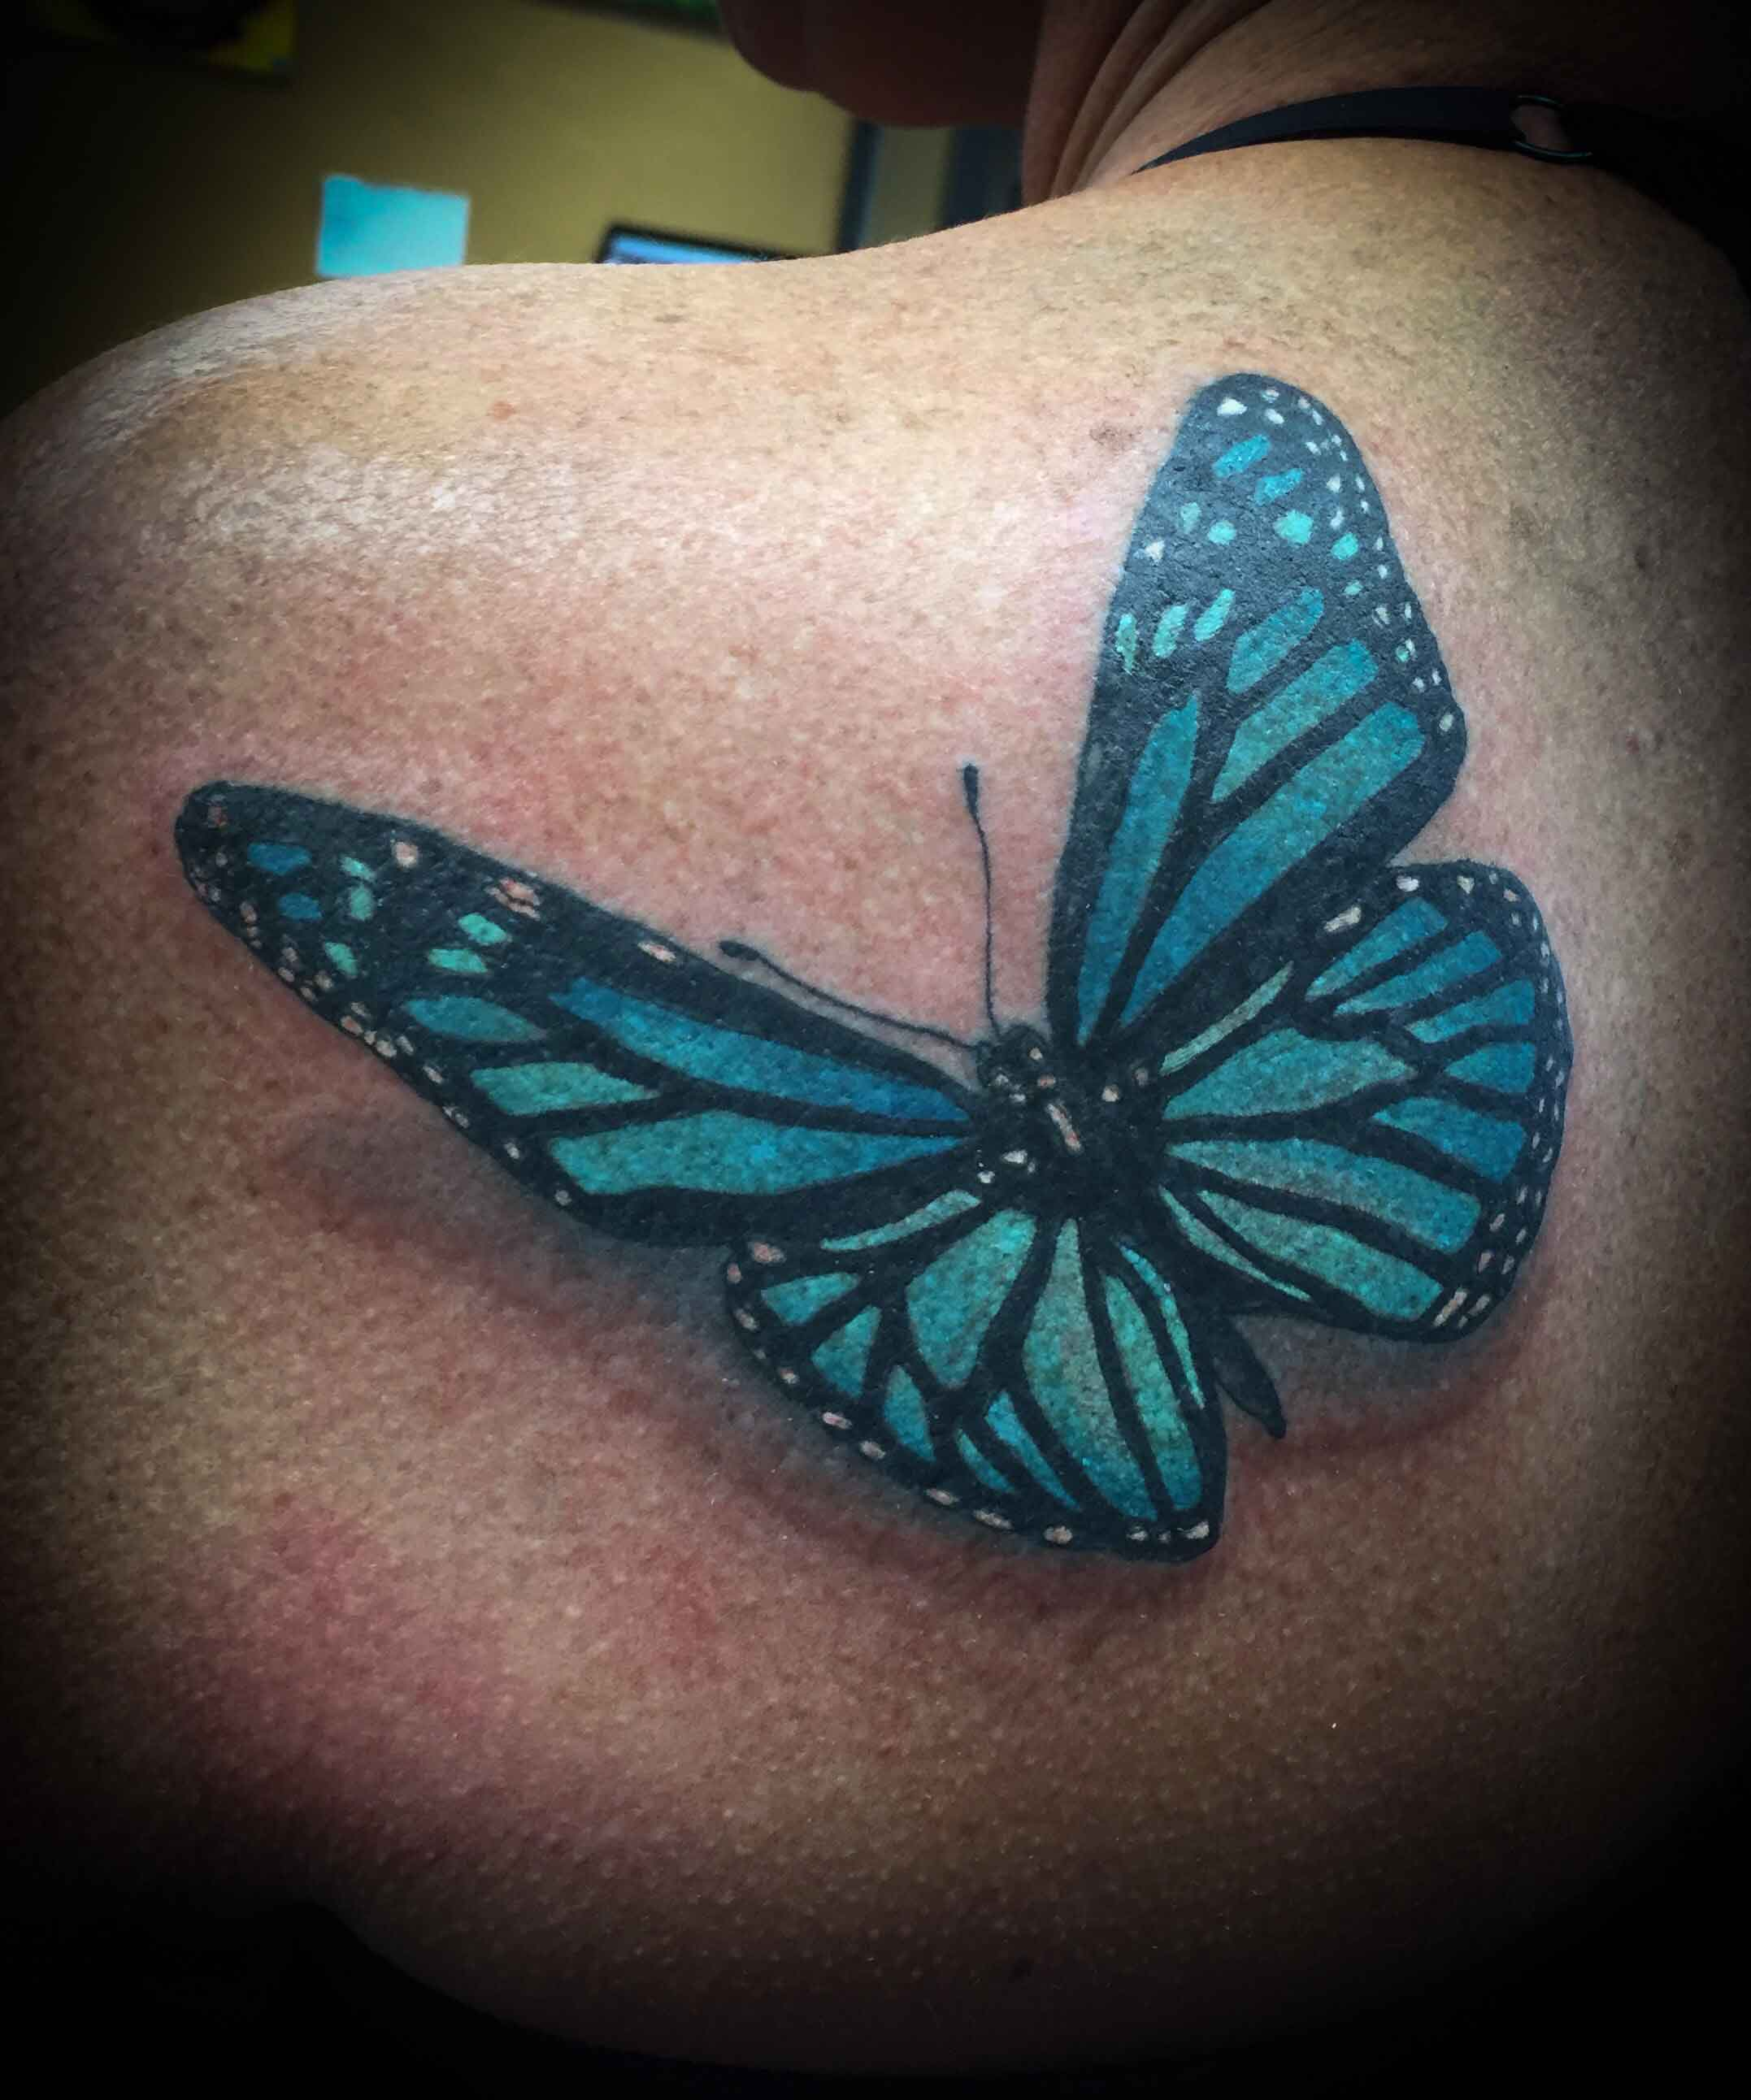 realism-tattoo-of-butterfly-by-resident-Funhouse-Tattoo-artist-Leo-Cadanezzi-in-San-Diego